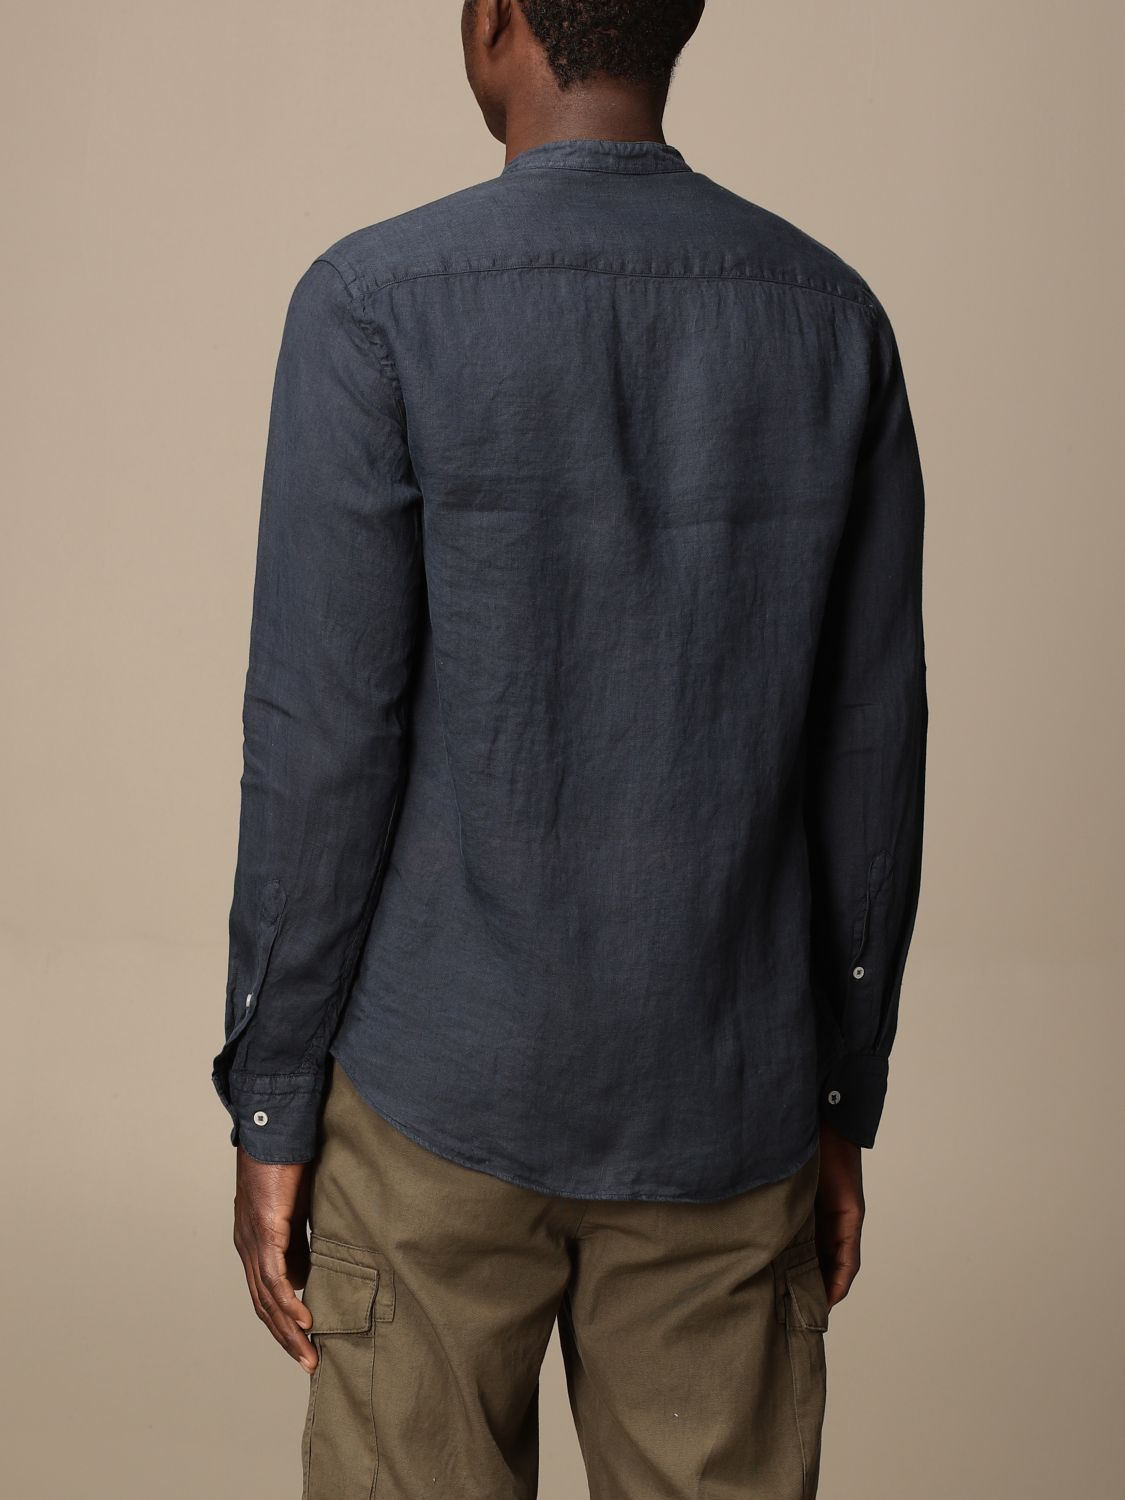 Chemise An American Tradition: Chemise homme Bd Baggies bleu 2